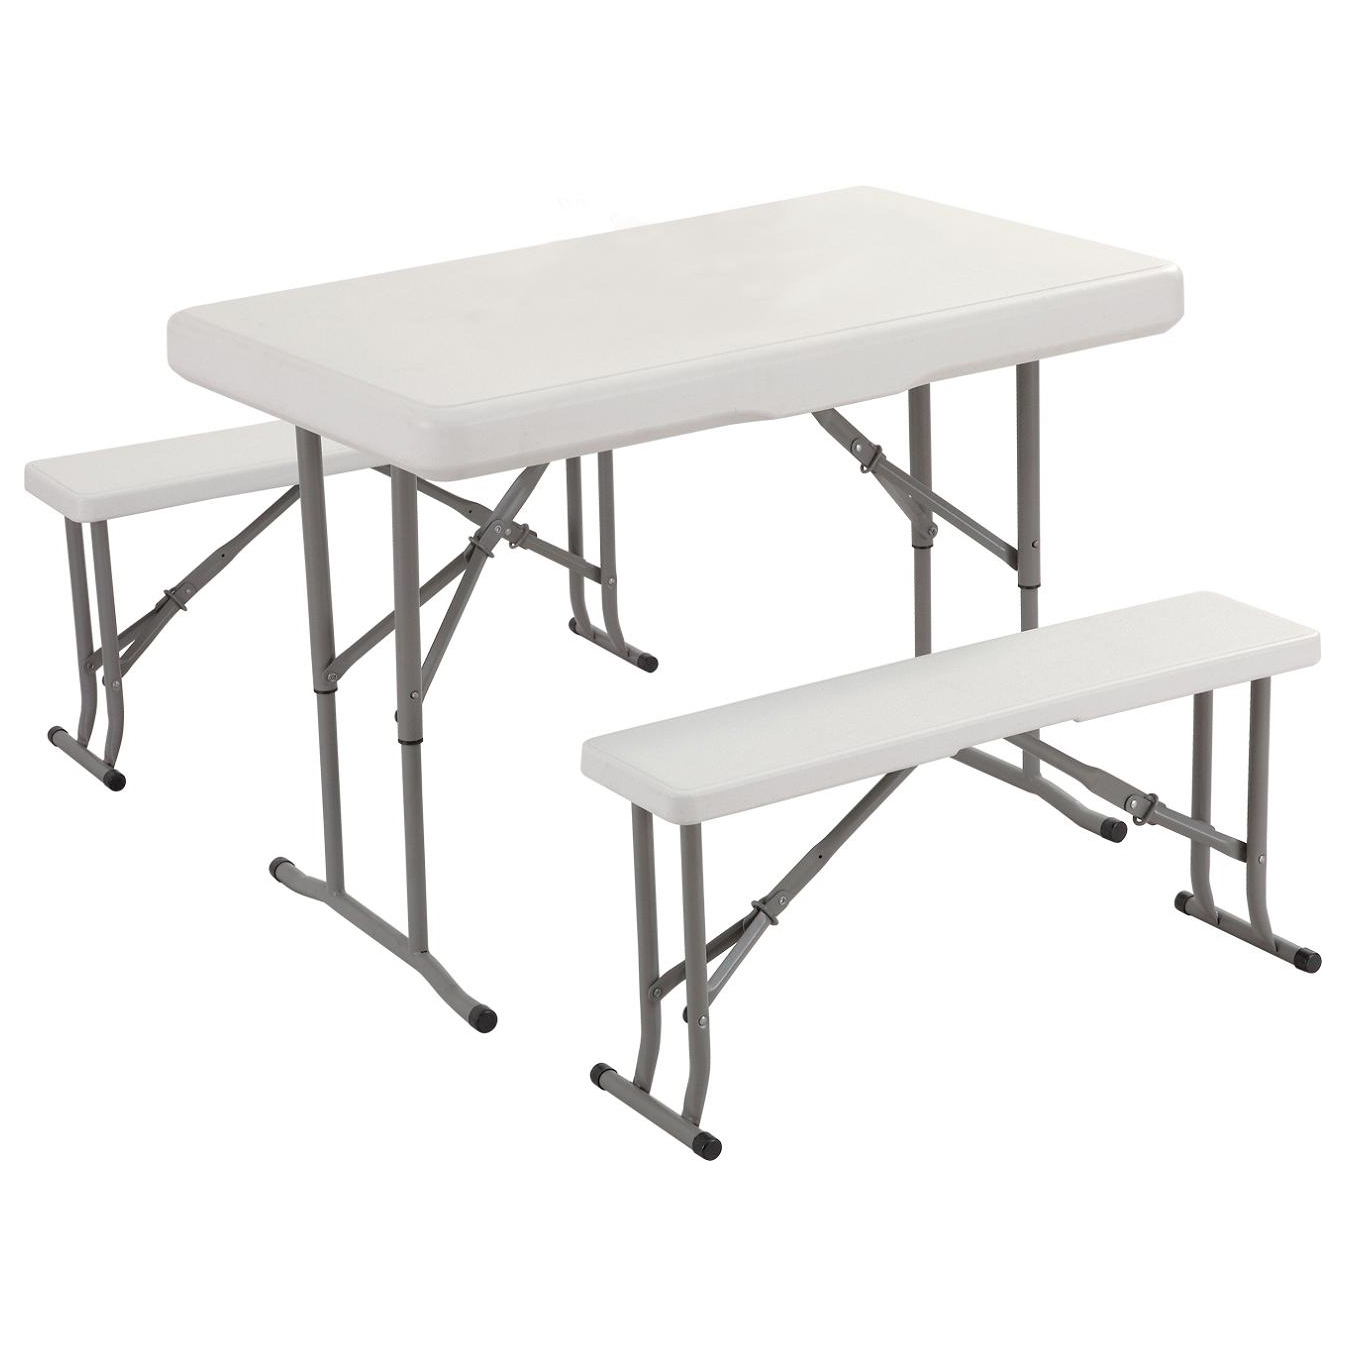 26004 Picnic Folding Table And Bench Set